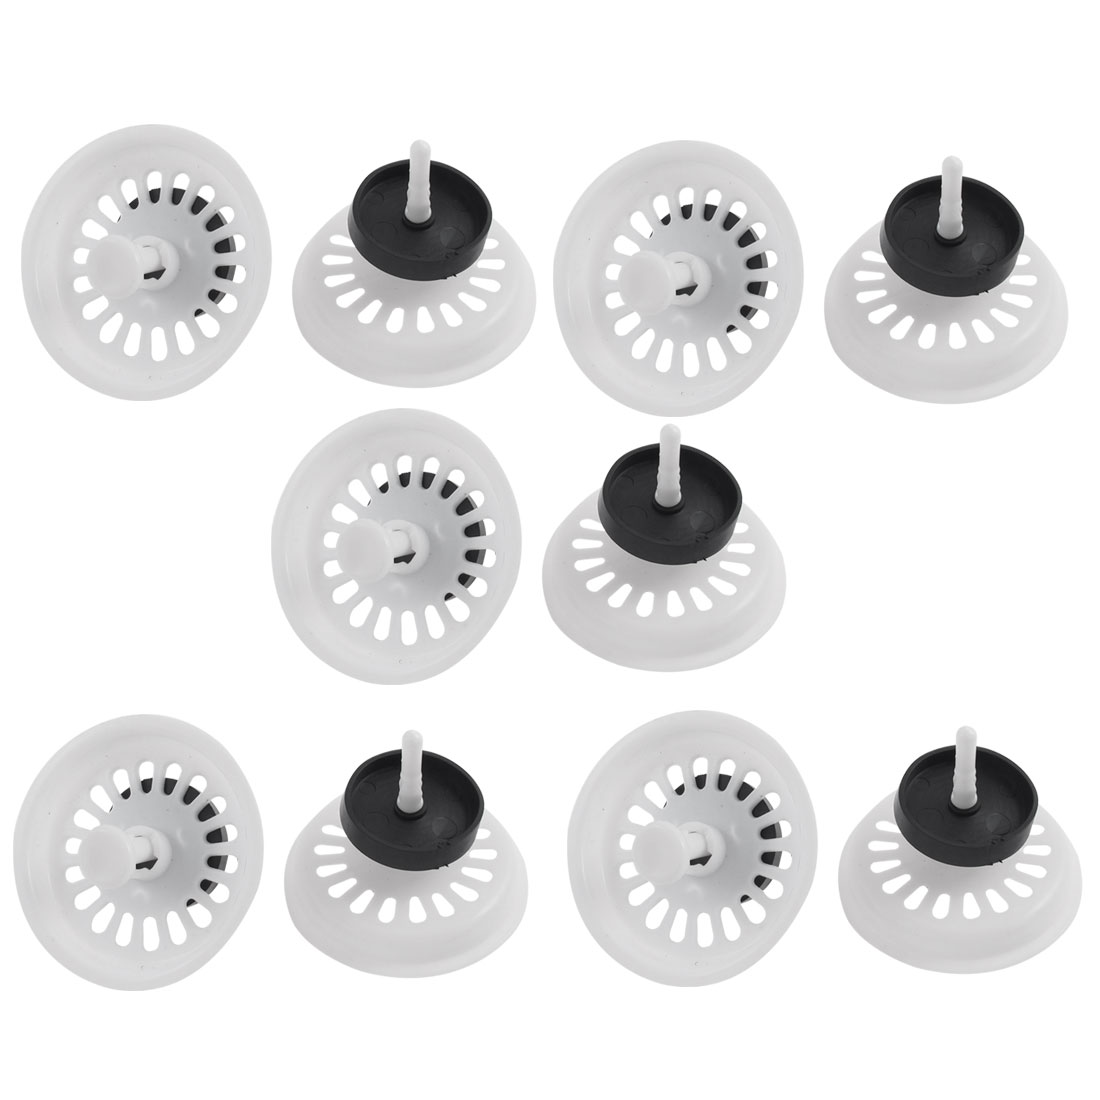 "Home Kitchen White Plastic Water Sink Drainer Strainer Filter Cover 3"" Dia 10pcs"